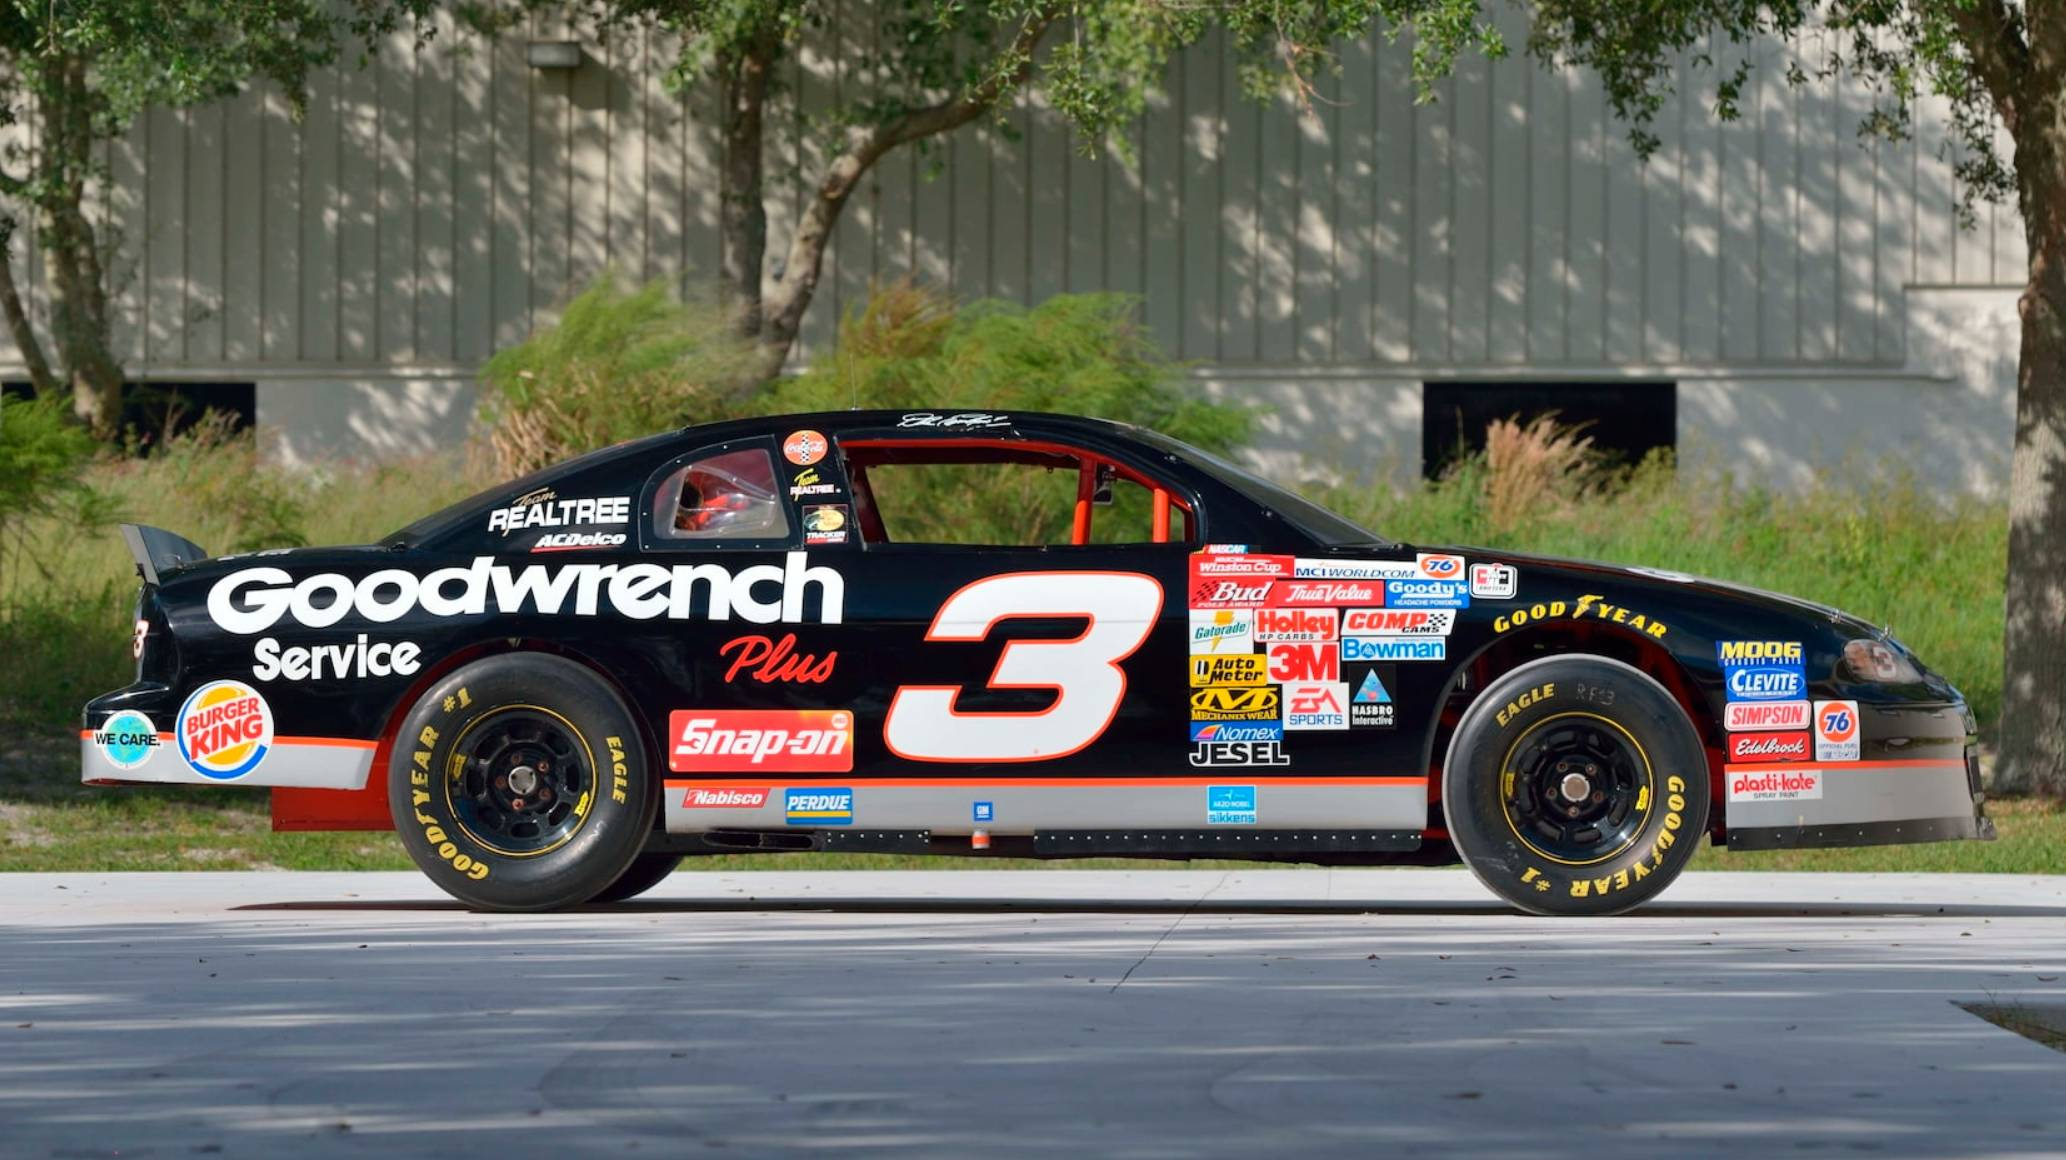 Dale Earnhardt car - RCR Racing Chassis